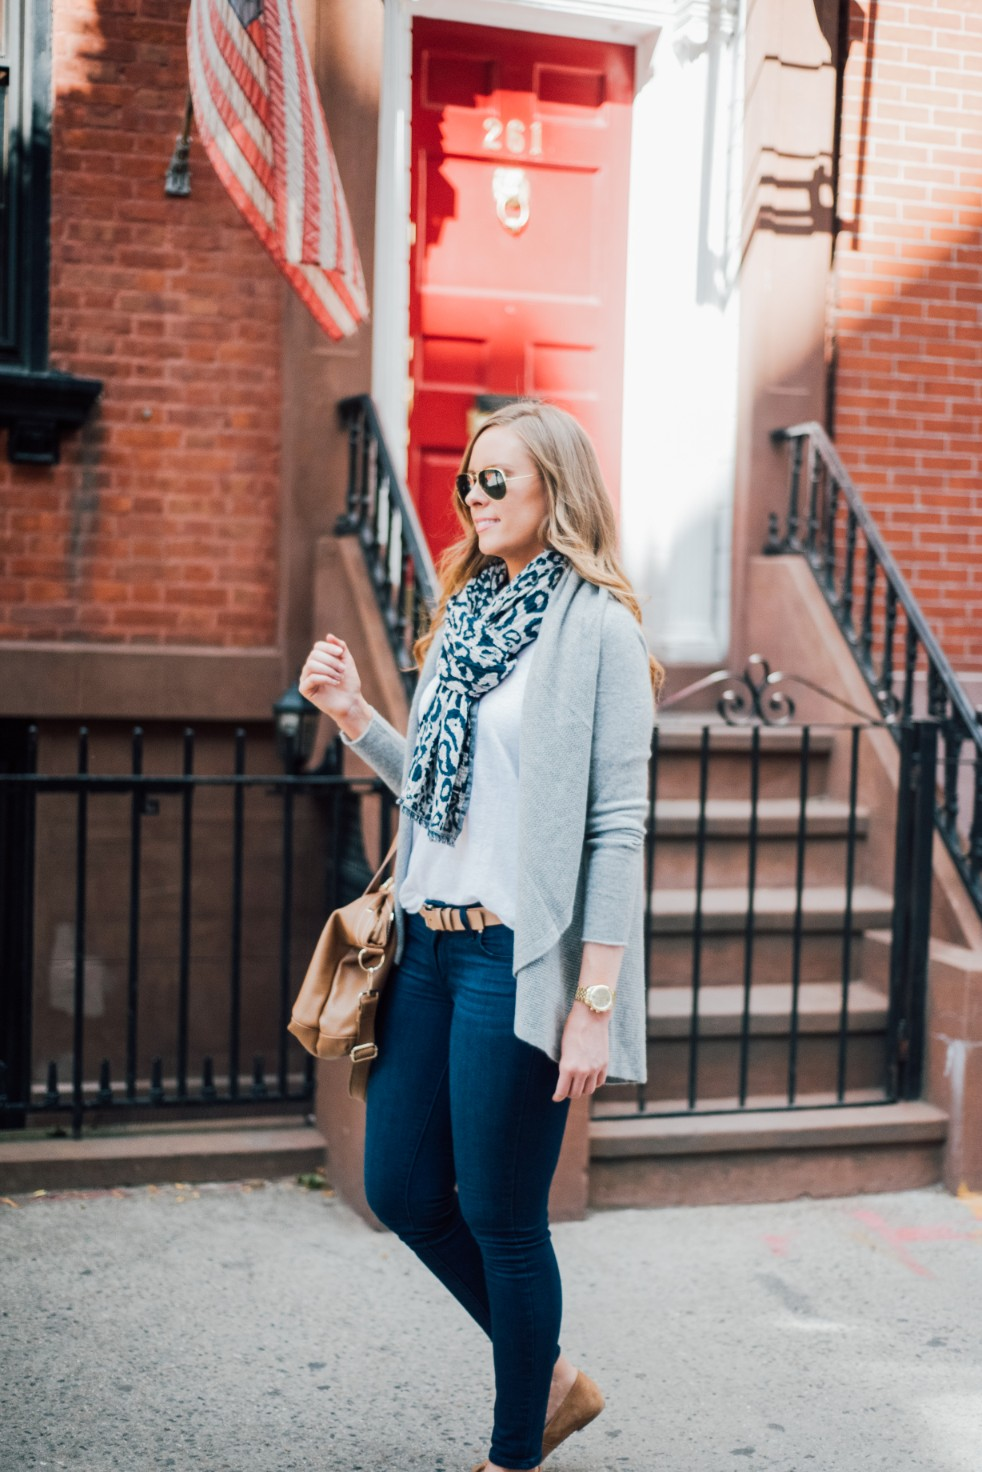 3 Wardrobe Basics Every Stylish Girl Needs